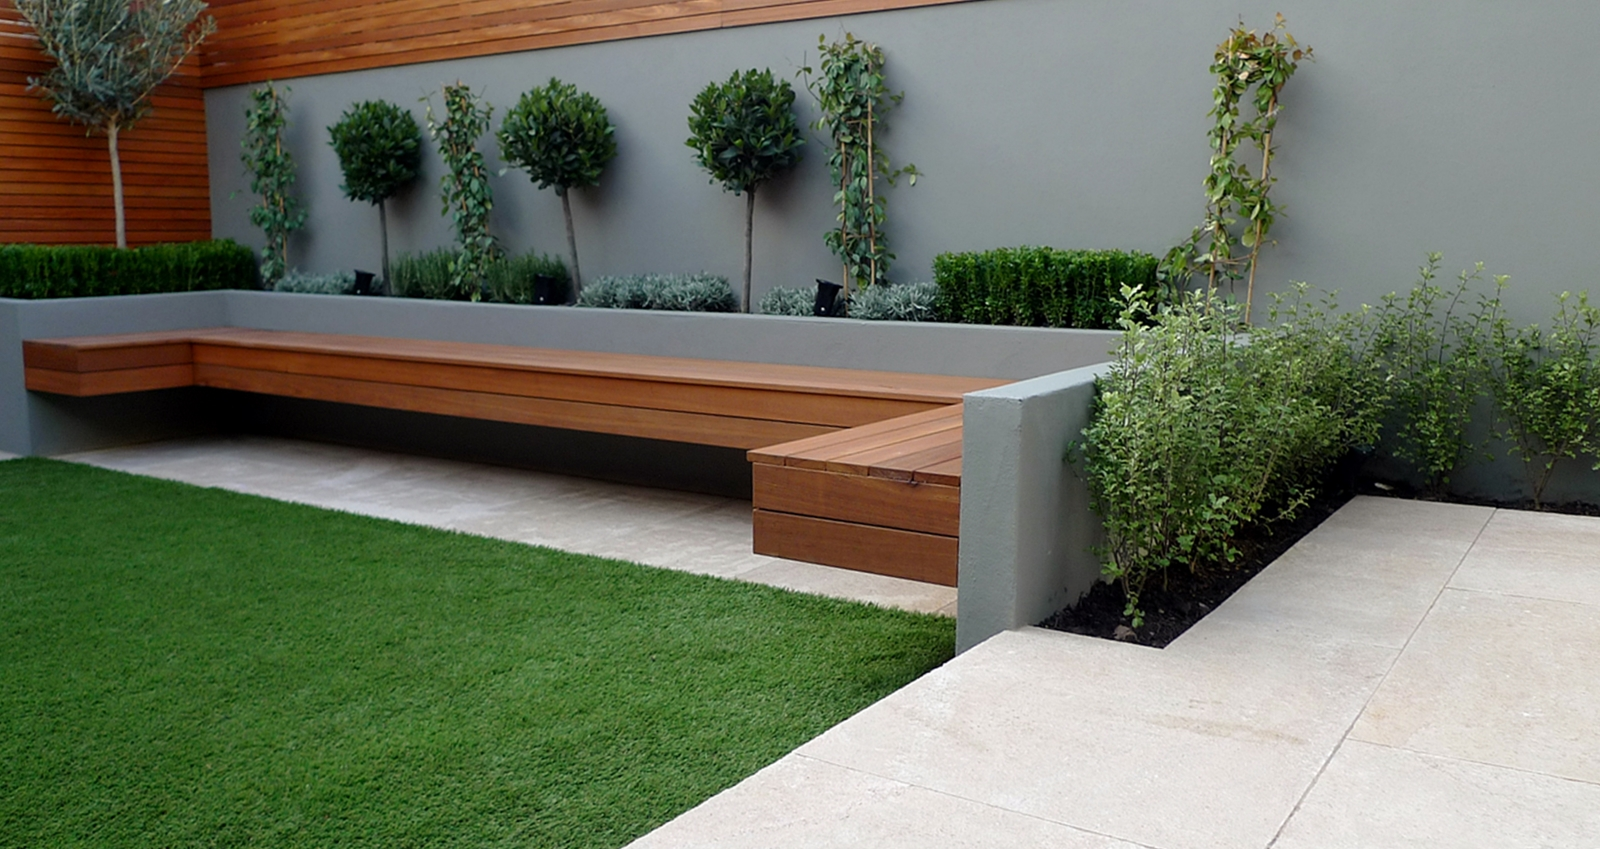 Courtyard london garden design for Small modern garden design ideas